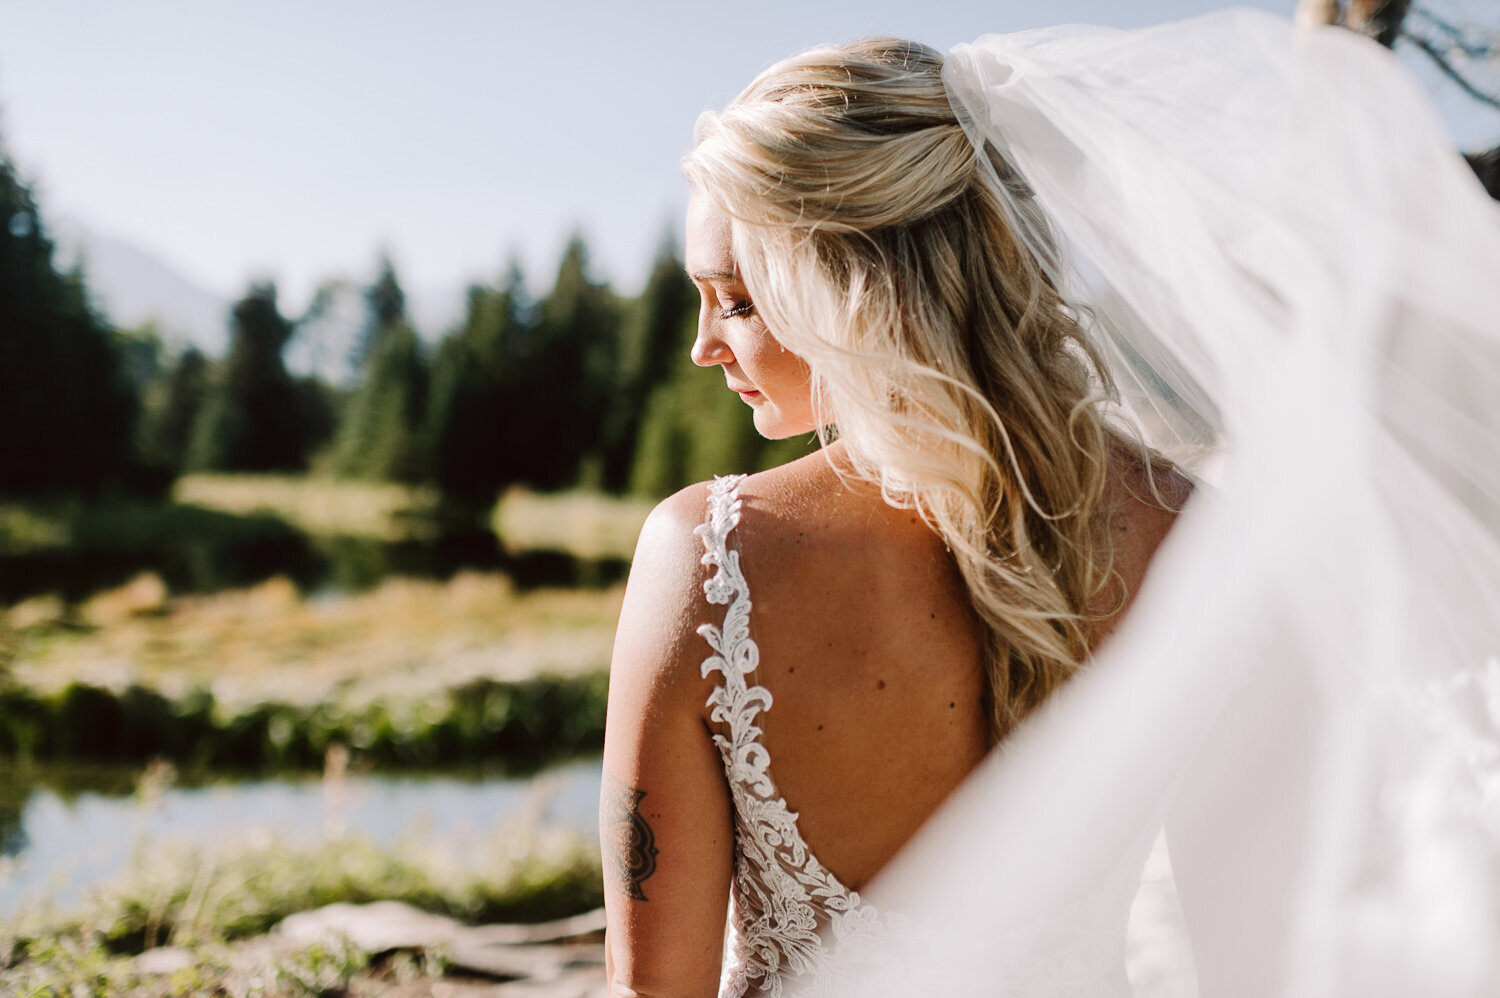 grand-teton-national-park-wedding-9